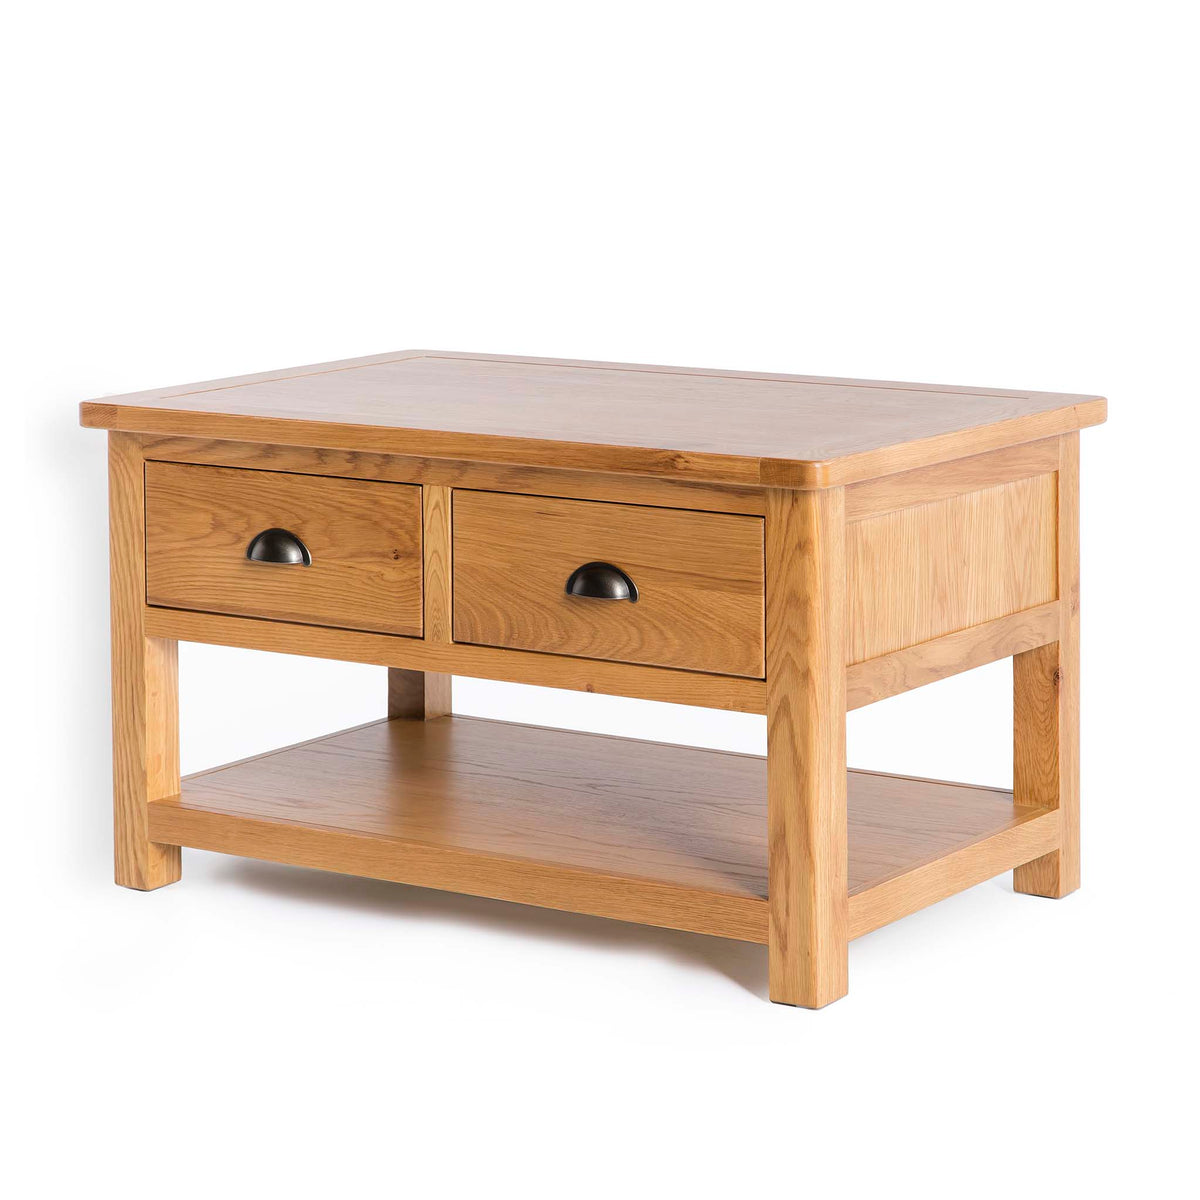 Drawer handle of Roseland Oak 2 Drawer Coffee Table